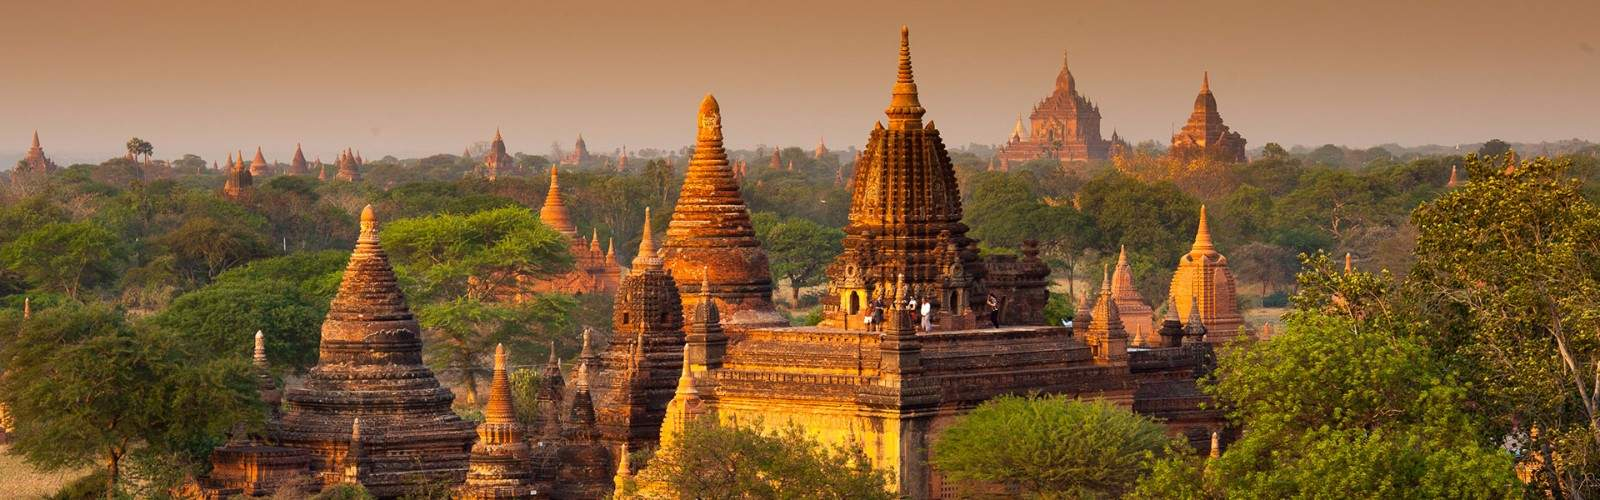 Epic Irrawaddy Tour | Wendy Wu Tours